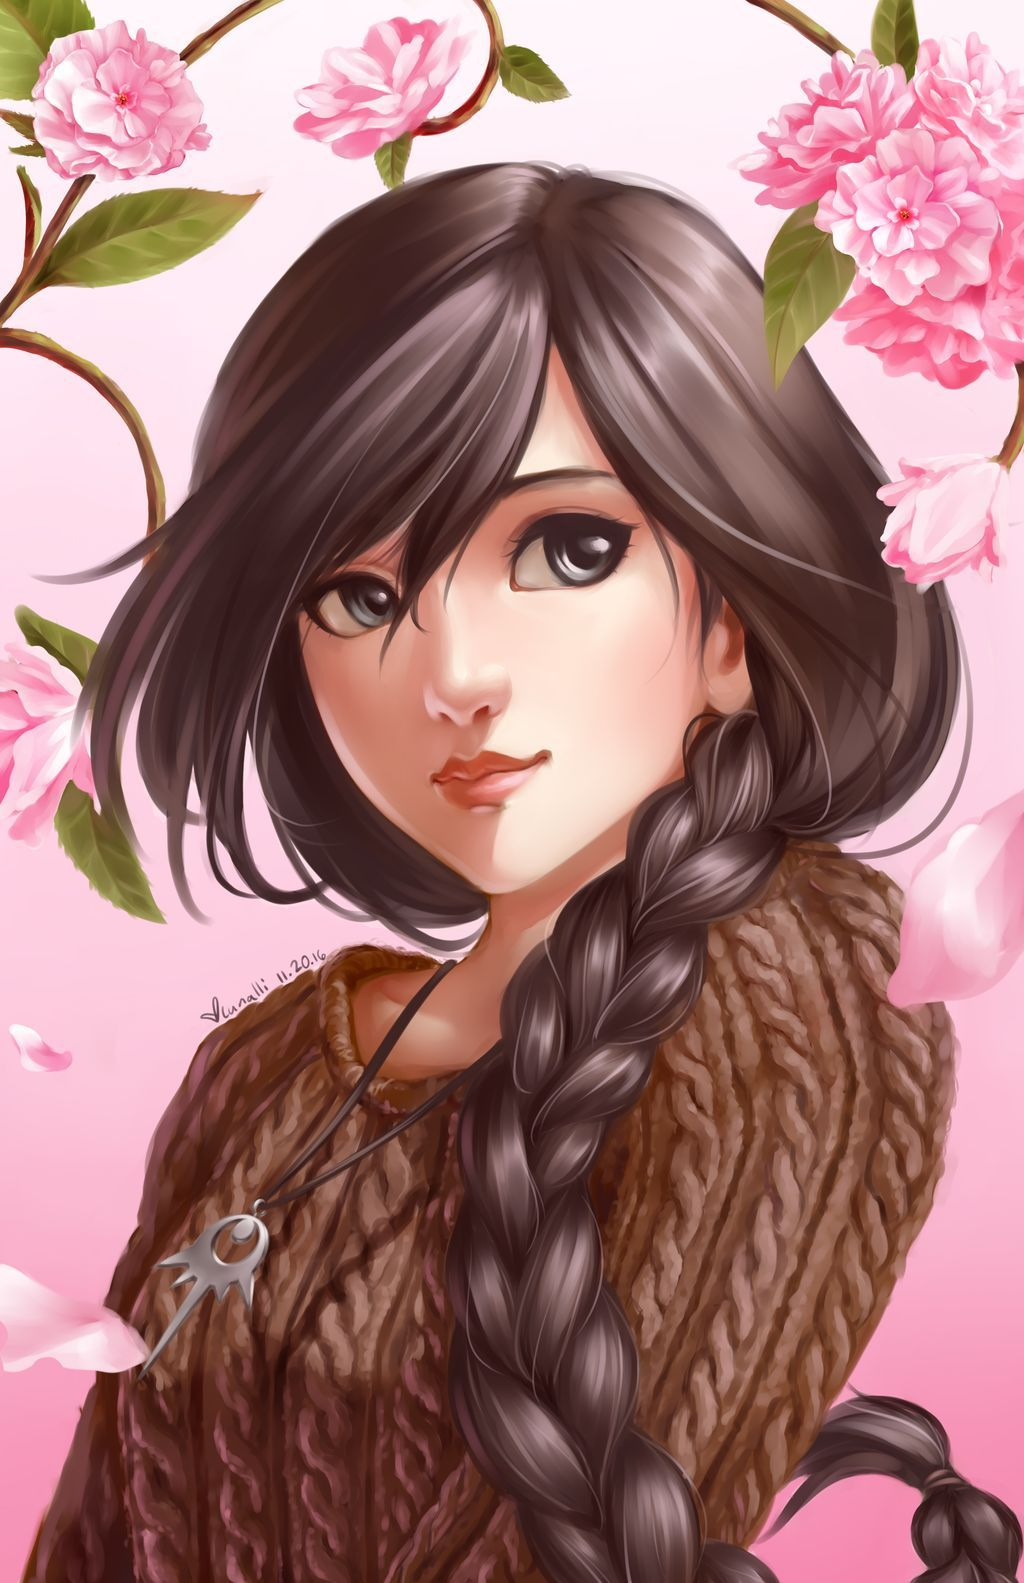 Cute Cartoon Girl Cute Cartoon Girl Cartoons Dp Cute Cartoon Pictures